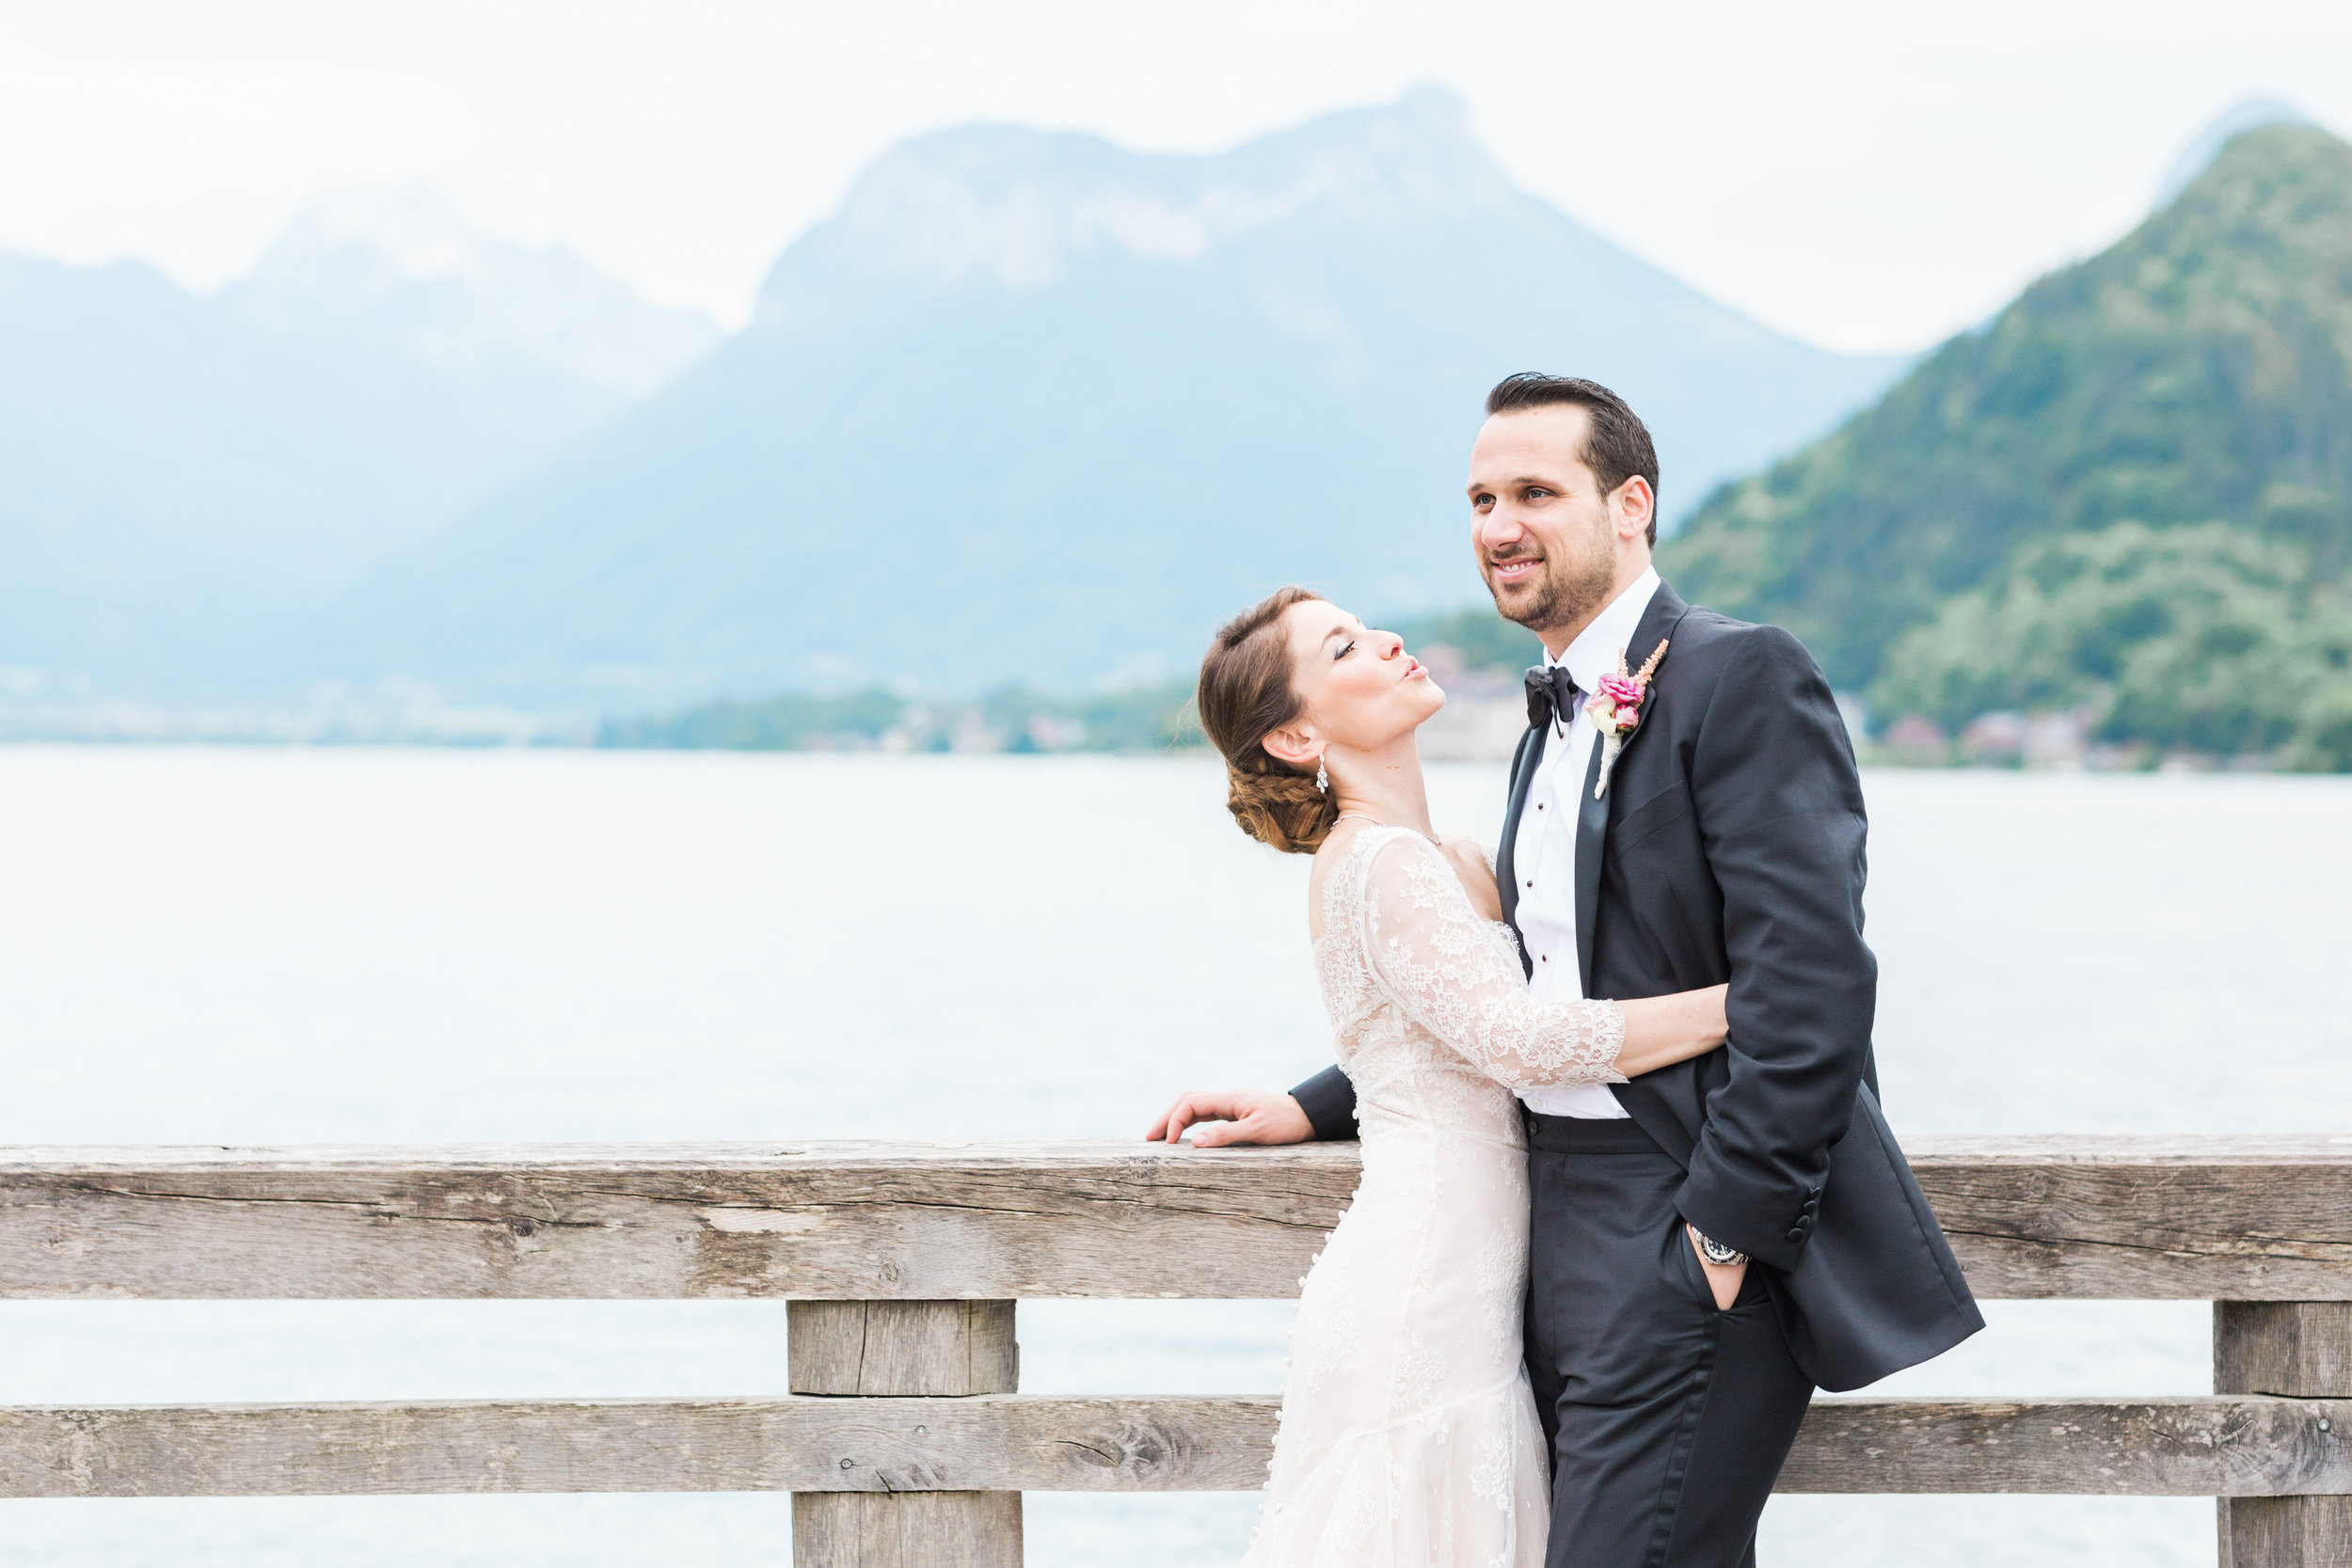 France wedding, Annecy wedding planner, Talloires wedding, Talloires wedding planner, destination wedding planner, France wedding planner, French wedding, Lake Annecy, Lac d'annecy